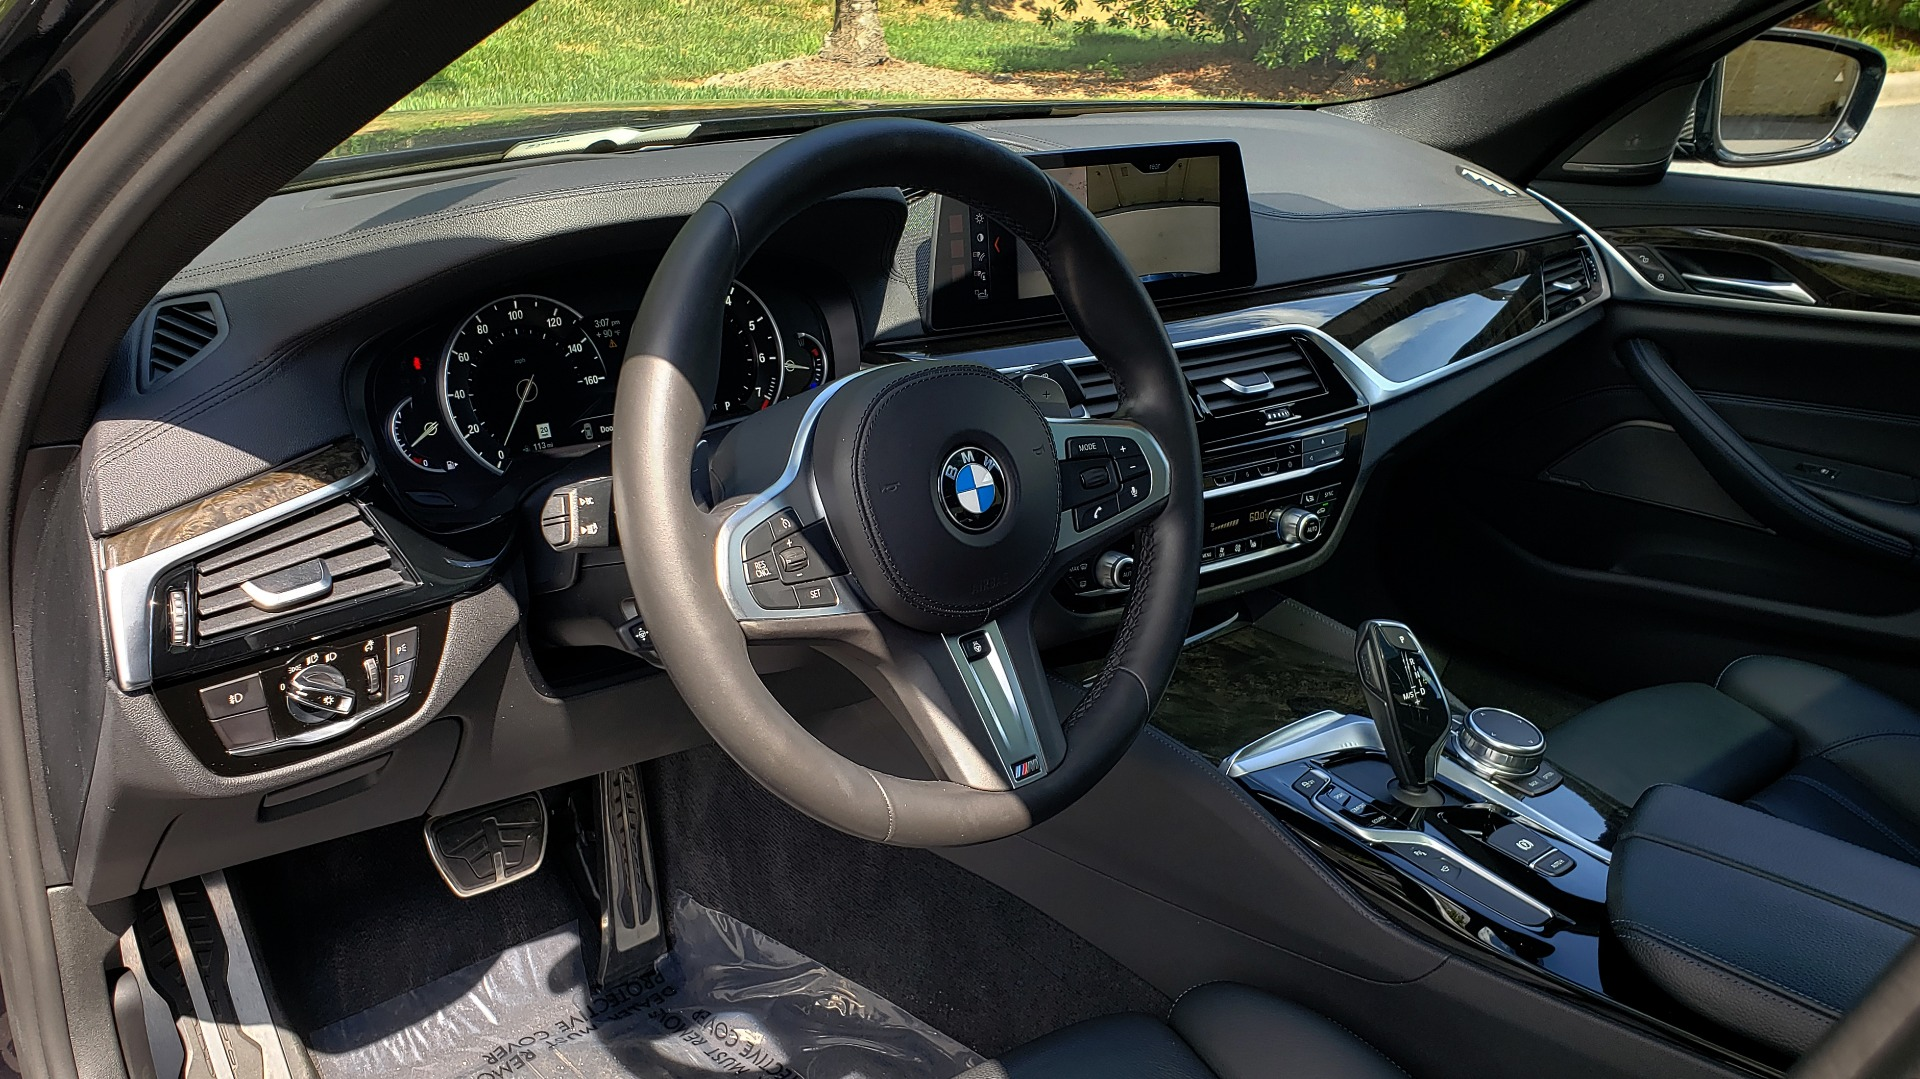 Used 2017 BMW 5 SERIES 540I XDRIVE PREMIUM / NAV / DRVR ASST PLUS / CLD WTHR / SUNROOF / REARVIEW for sale Sold at Formula Imports in Charlotte NC 28227 30